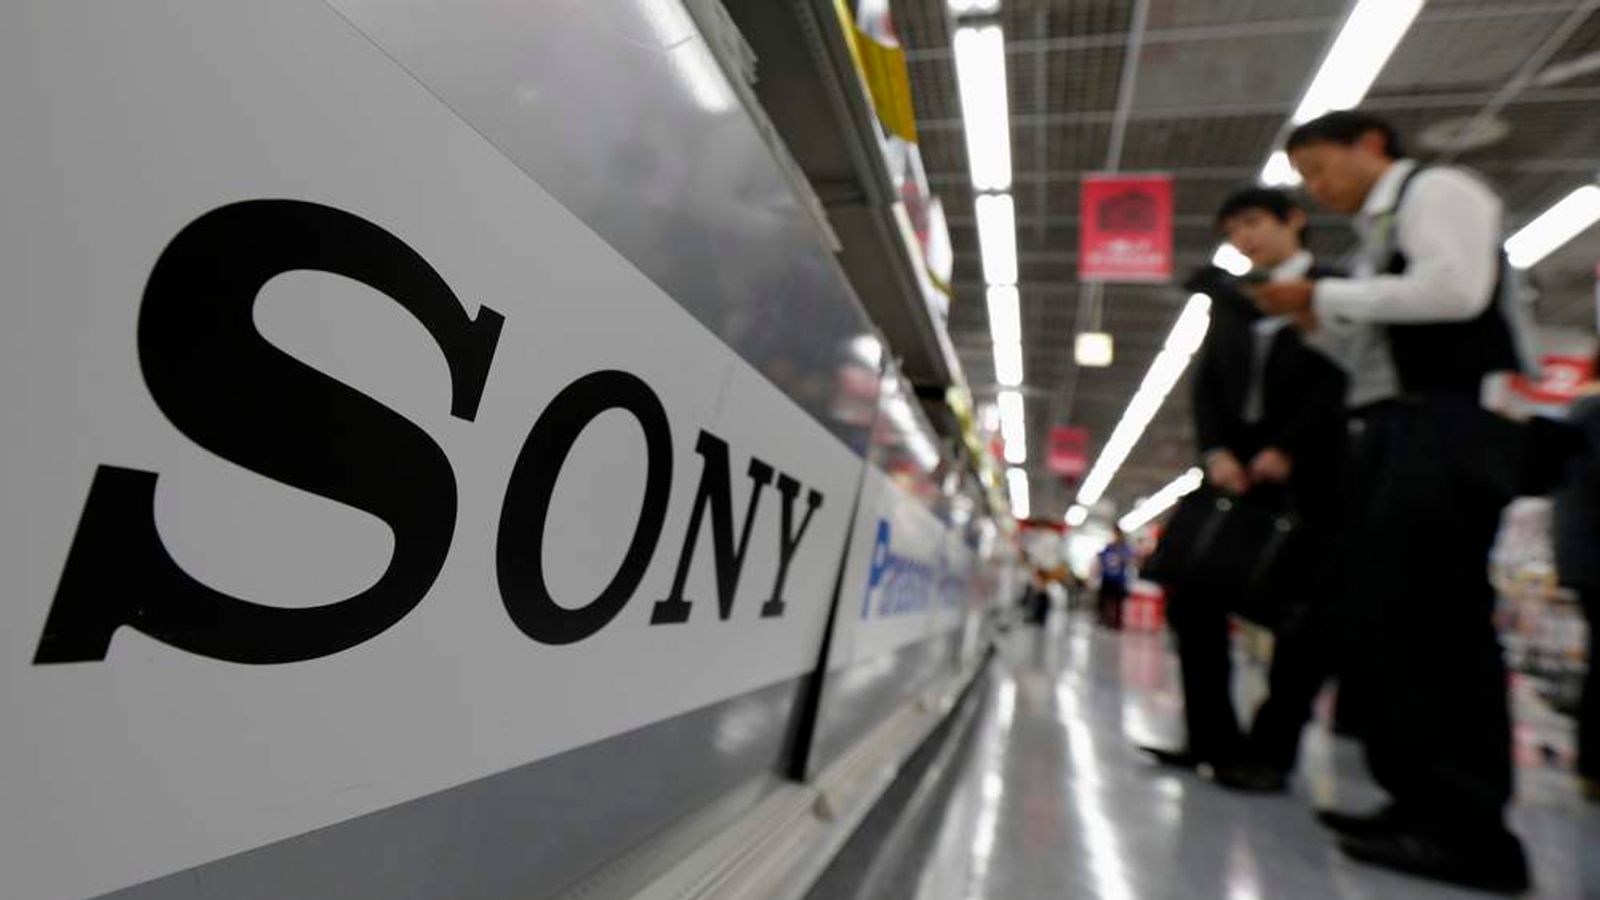 A Sony logo is seen as customers look at Sony's digital cameras at an electronic shop in Tokyo